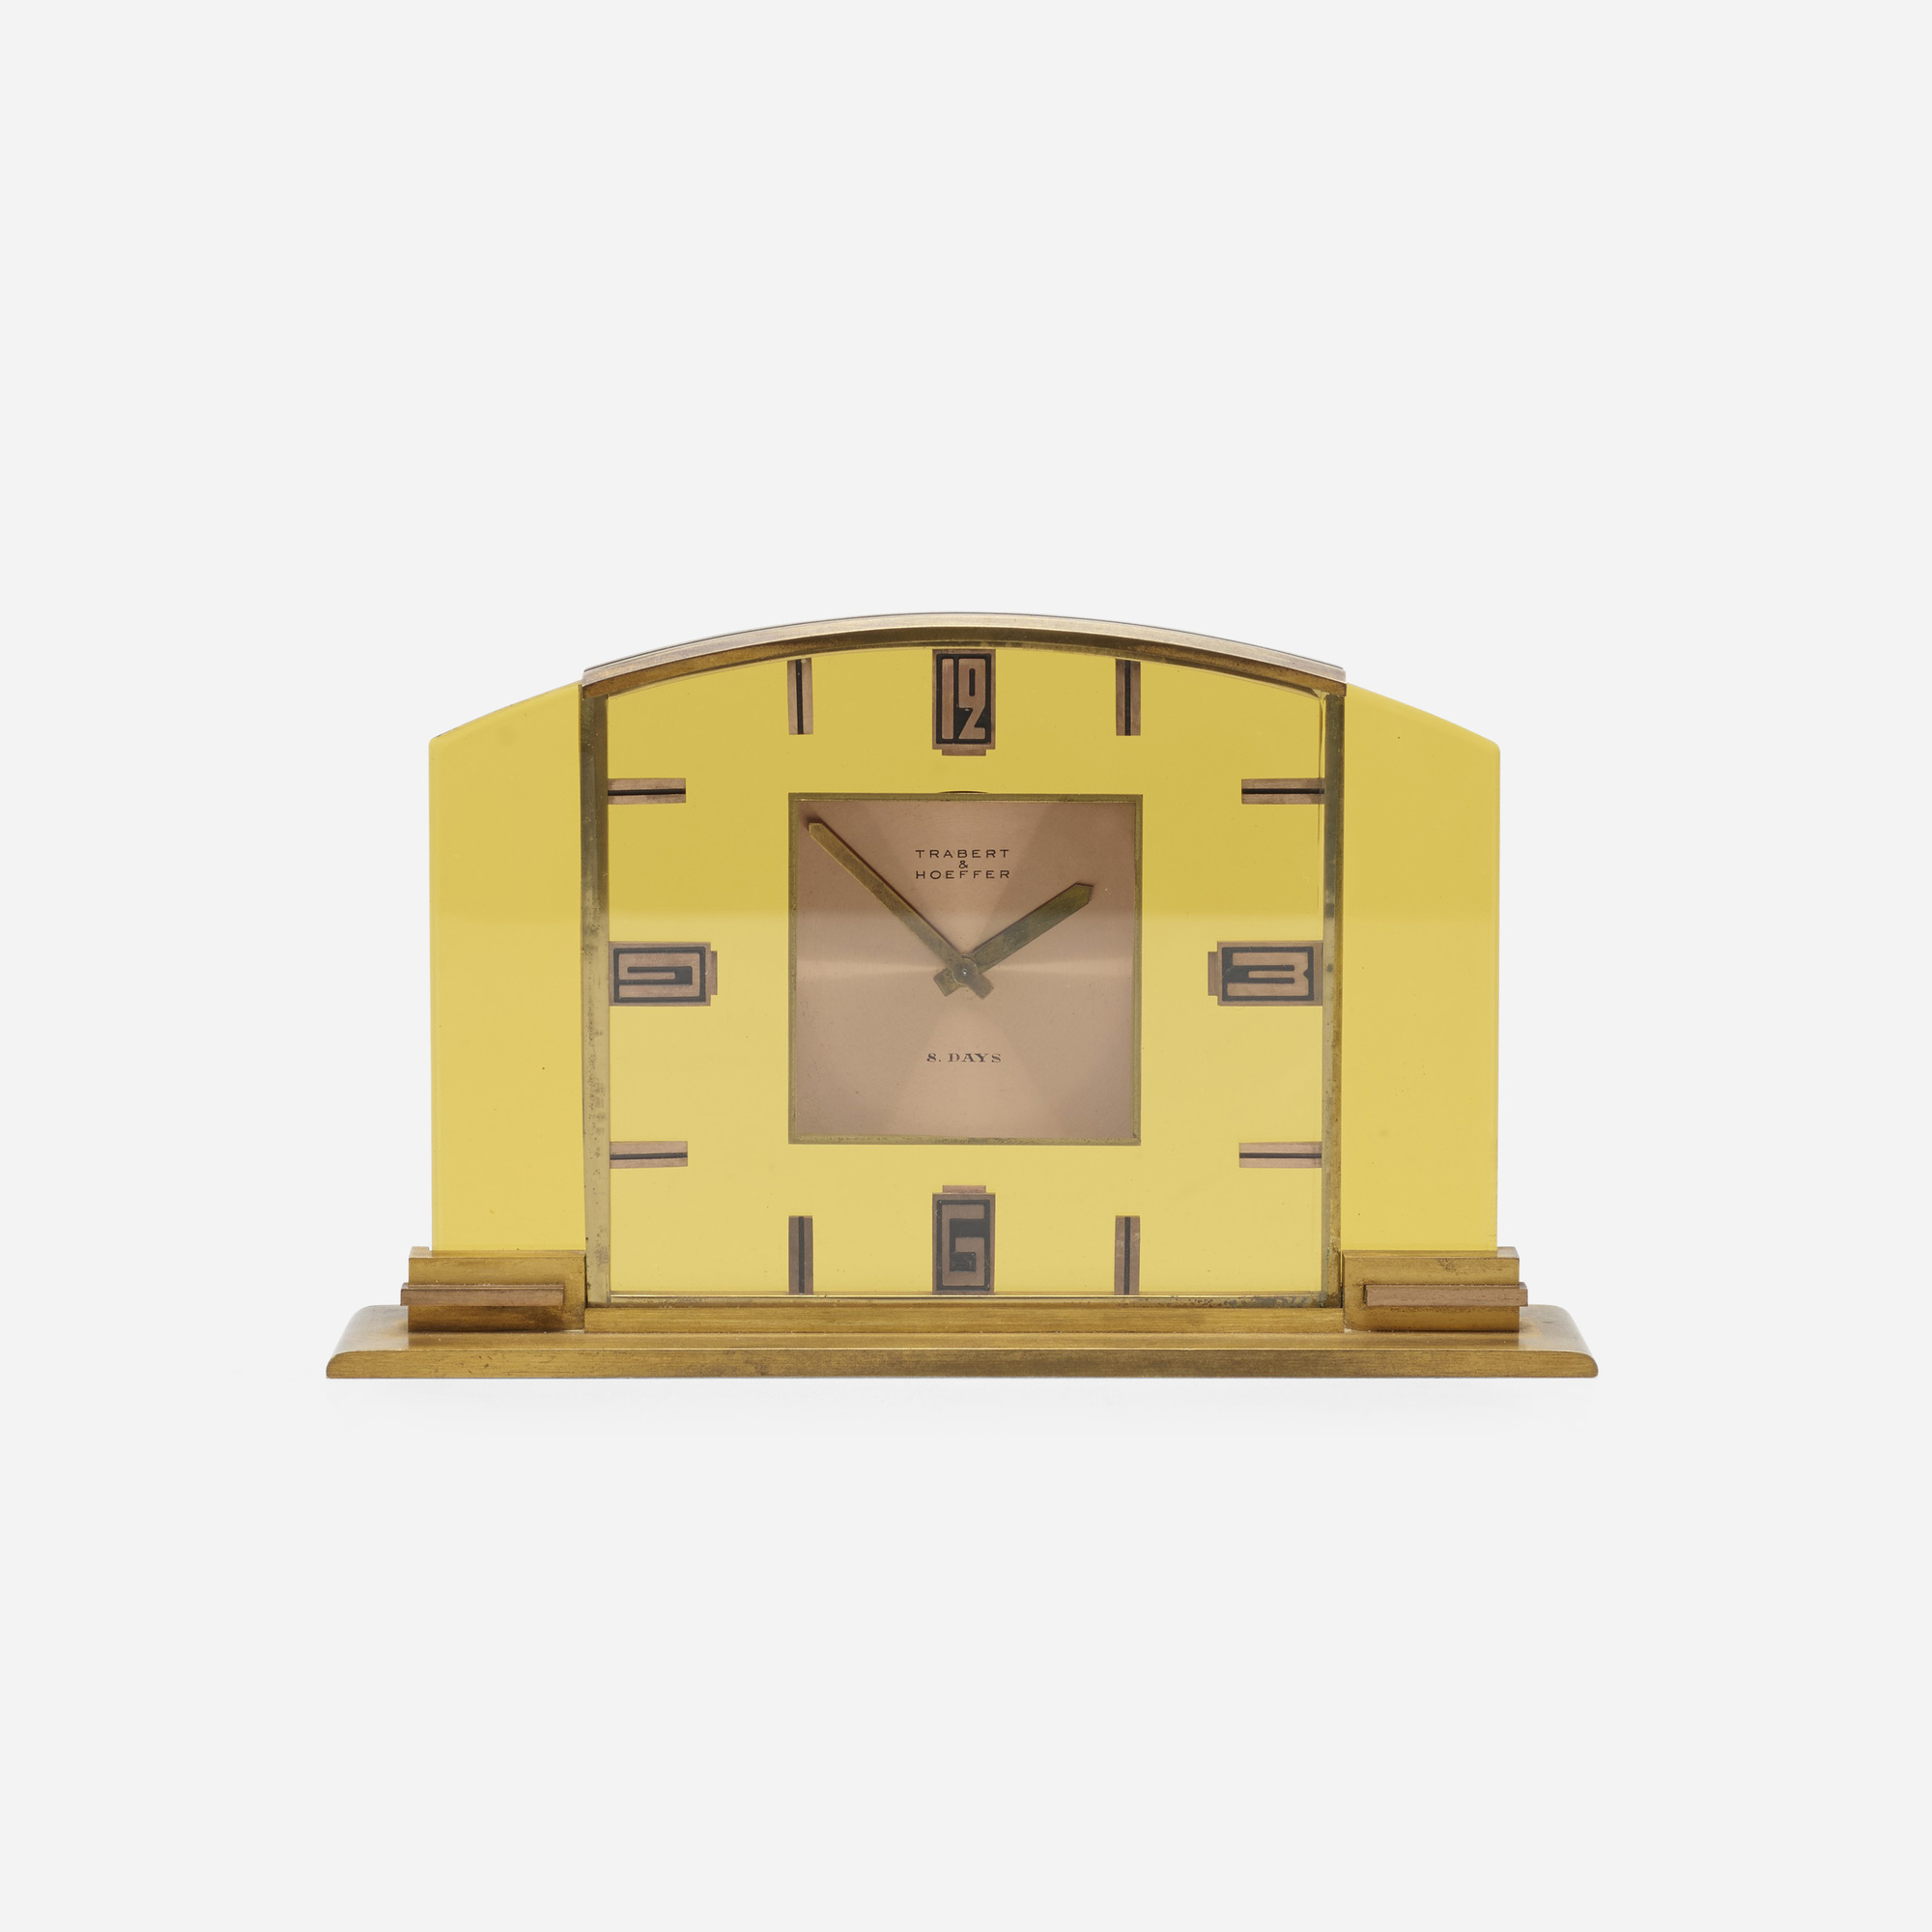 758: Trabert & Hoeffer / desk clock (1 of 1)